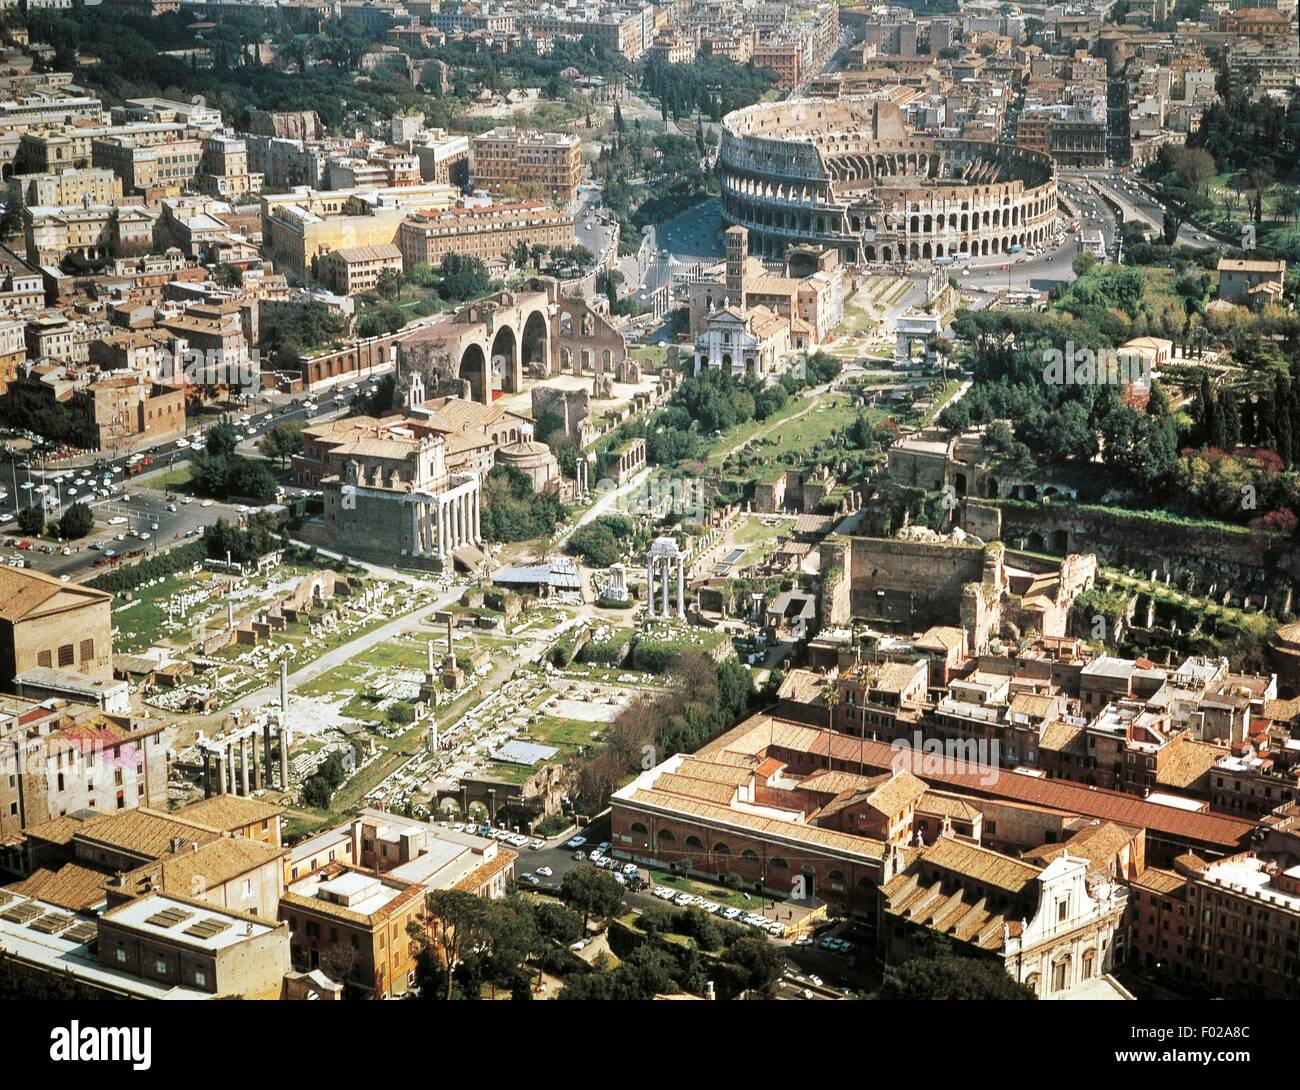 Aerial view of Roman Forum and Flavian amphitheater Colosseum in Rome (UNESCO World Heritage List, 1980, 1990)  - Stock Image